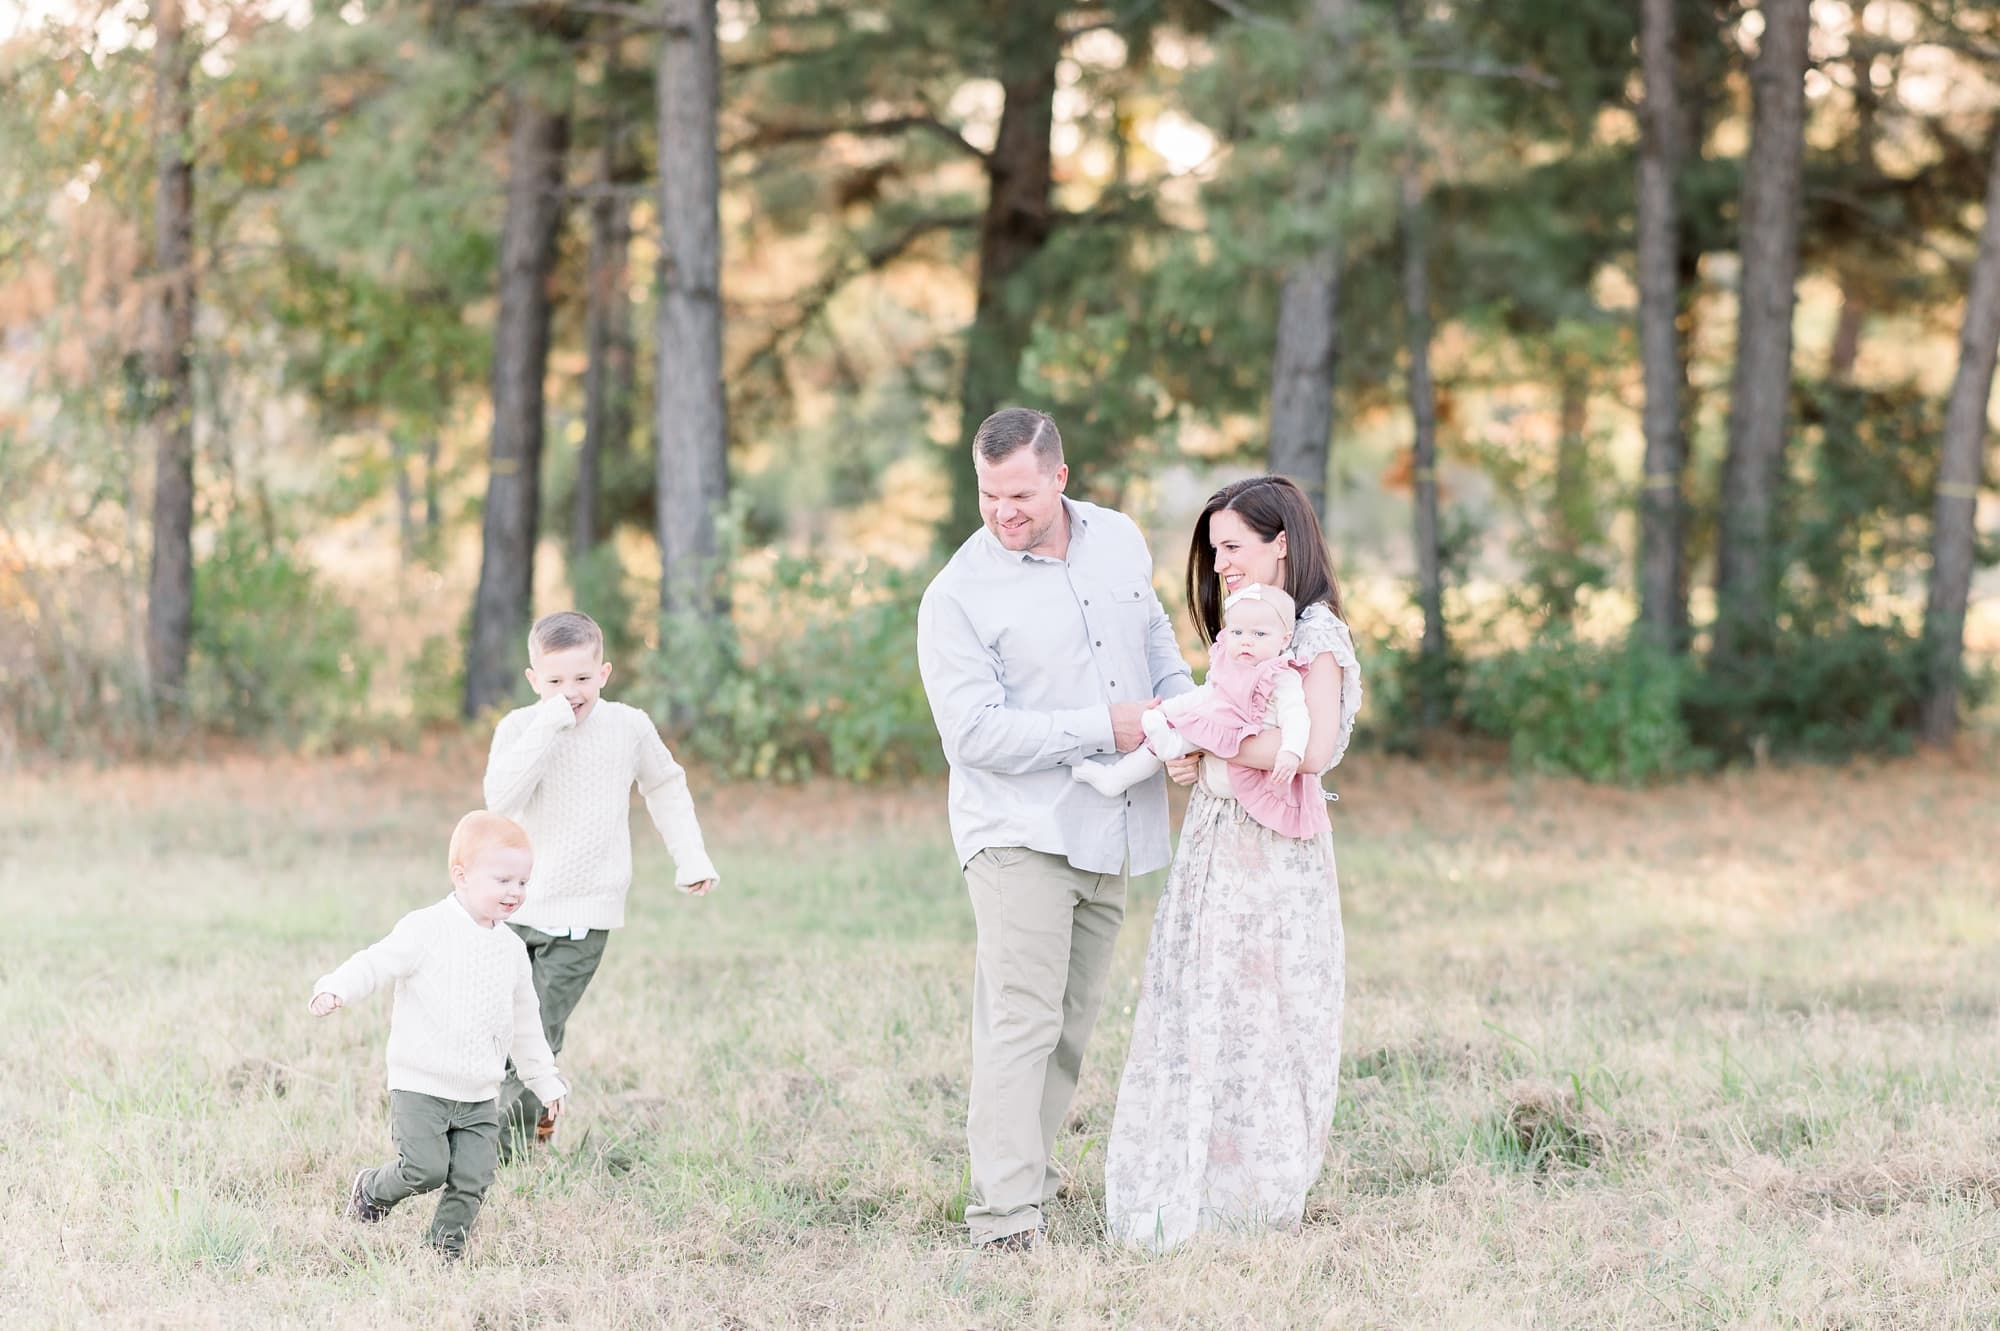 Toddlers playing chase during family session by Dallas TX family photographer, Aimee Hamilton Photography.